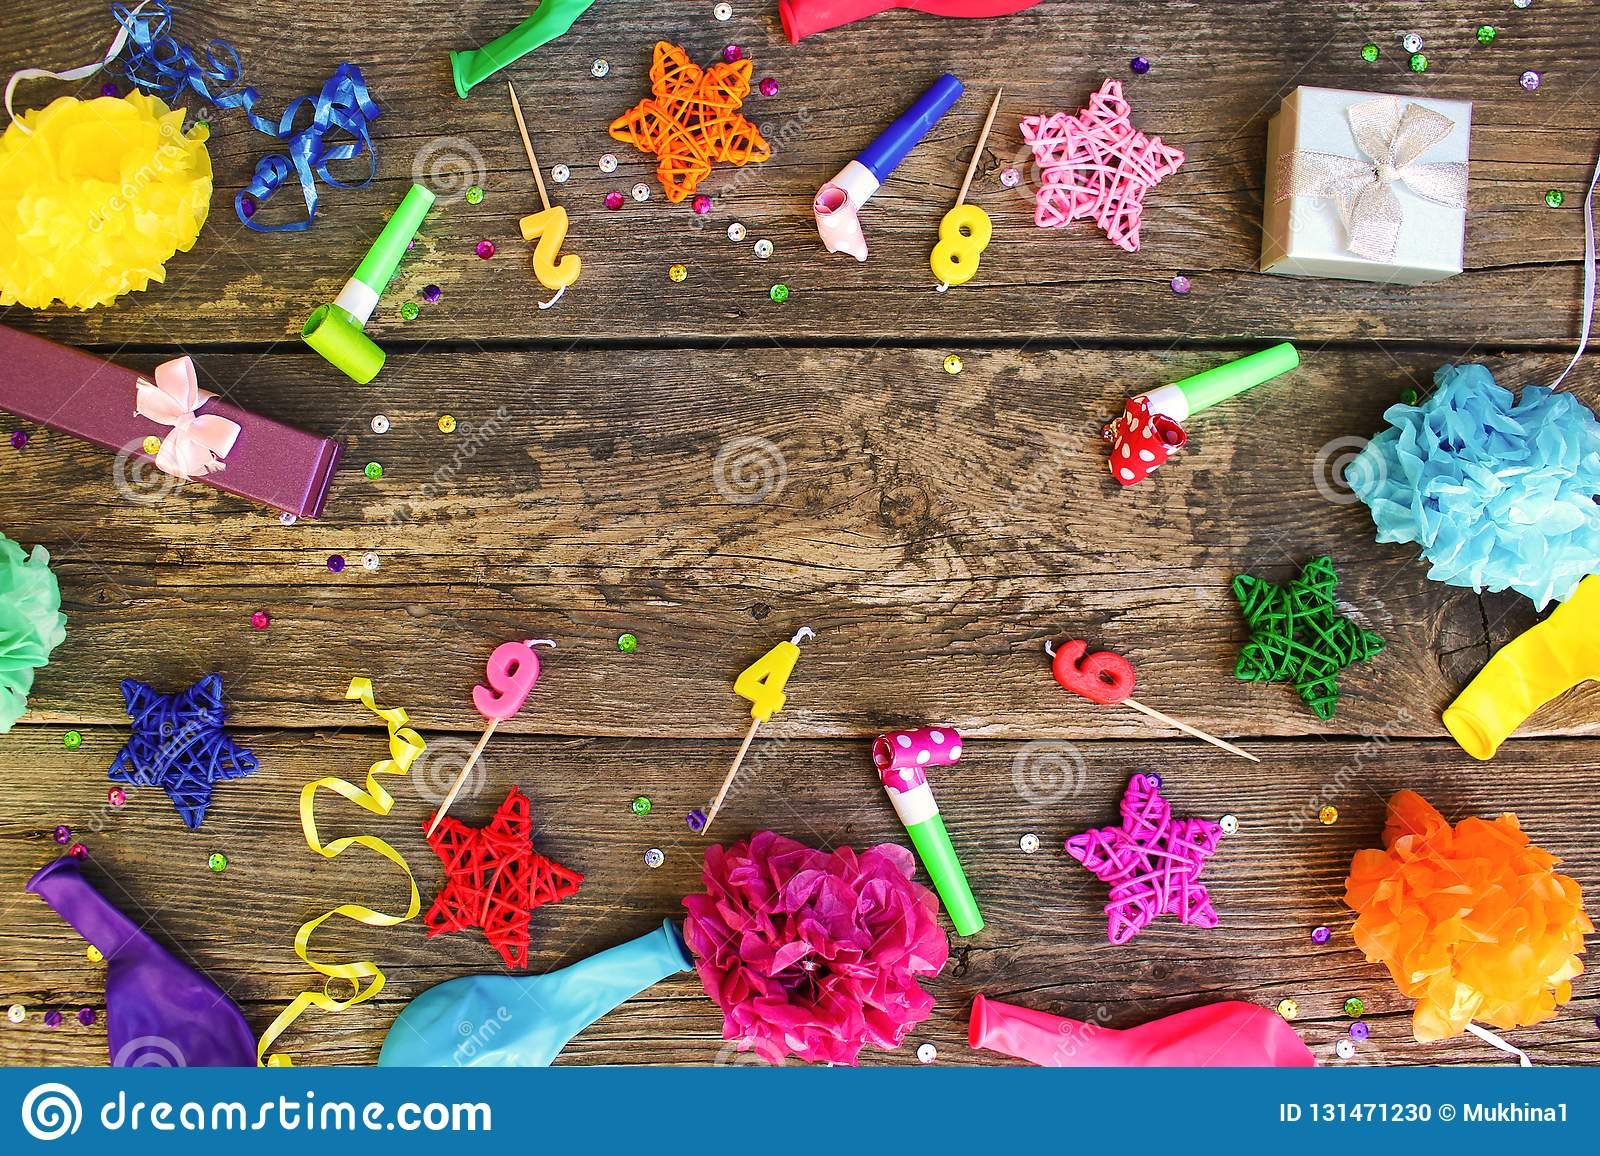 Whistles, balloons gifts, candles, decoration on old wooden background. Concept of children`s birthday party.